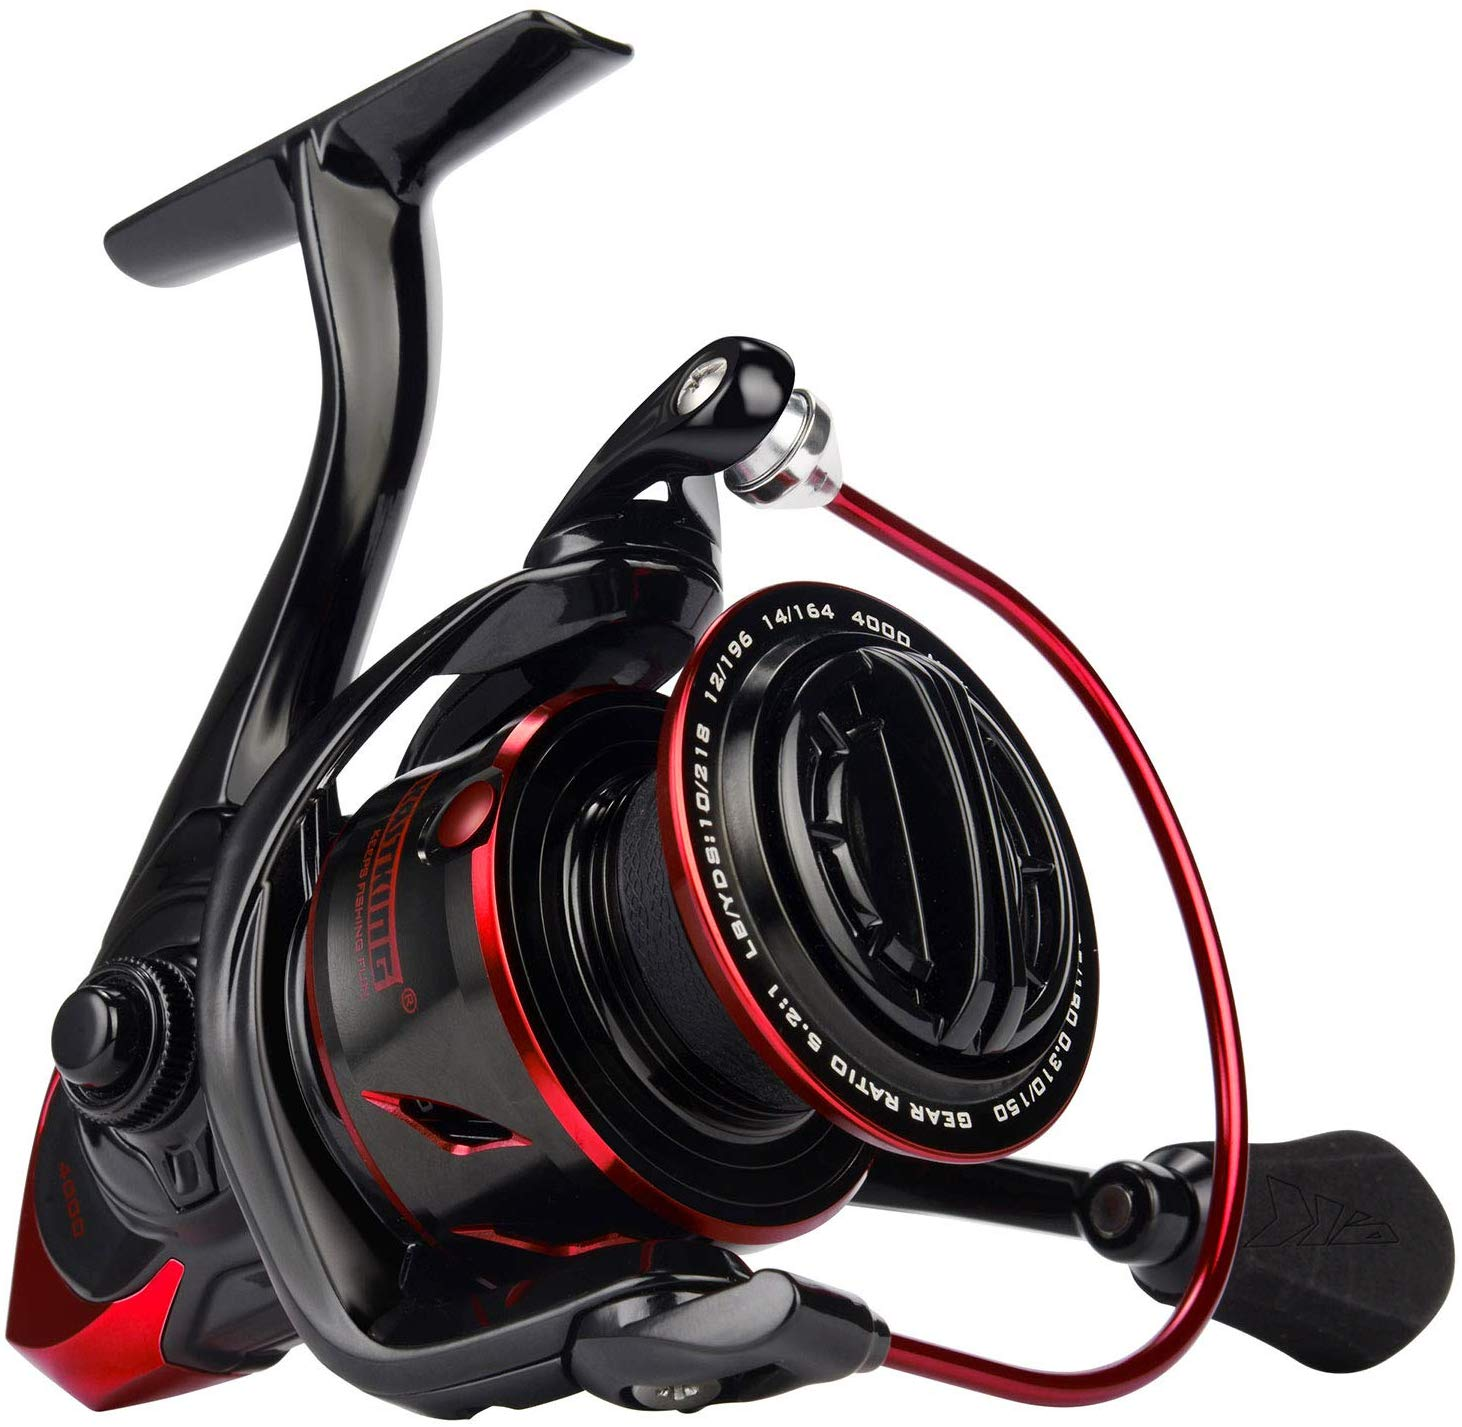 KastKing-Sharky-III-Fishing-Reel-Fishing-For-Sport